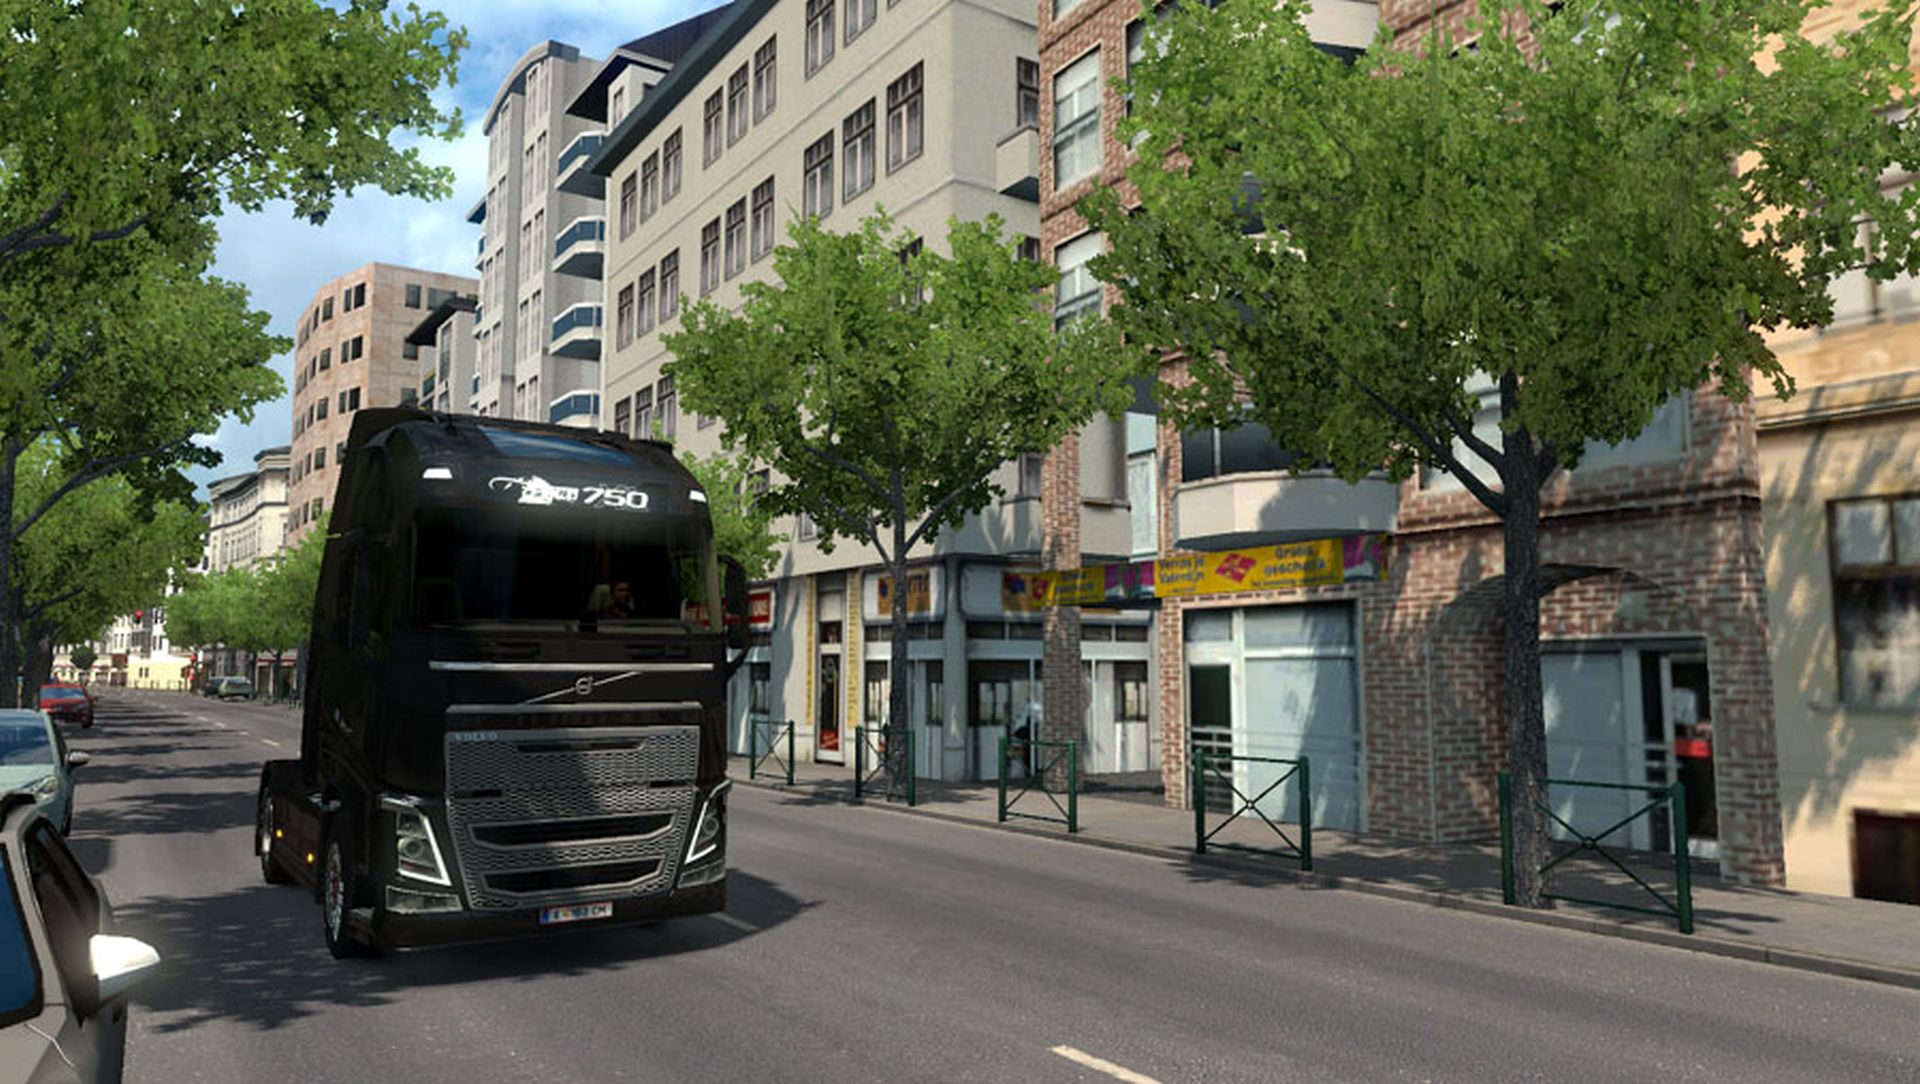 A Euro Truck Simulator 2 mod showing a black truck driving along the streets of Paris